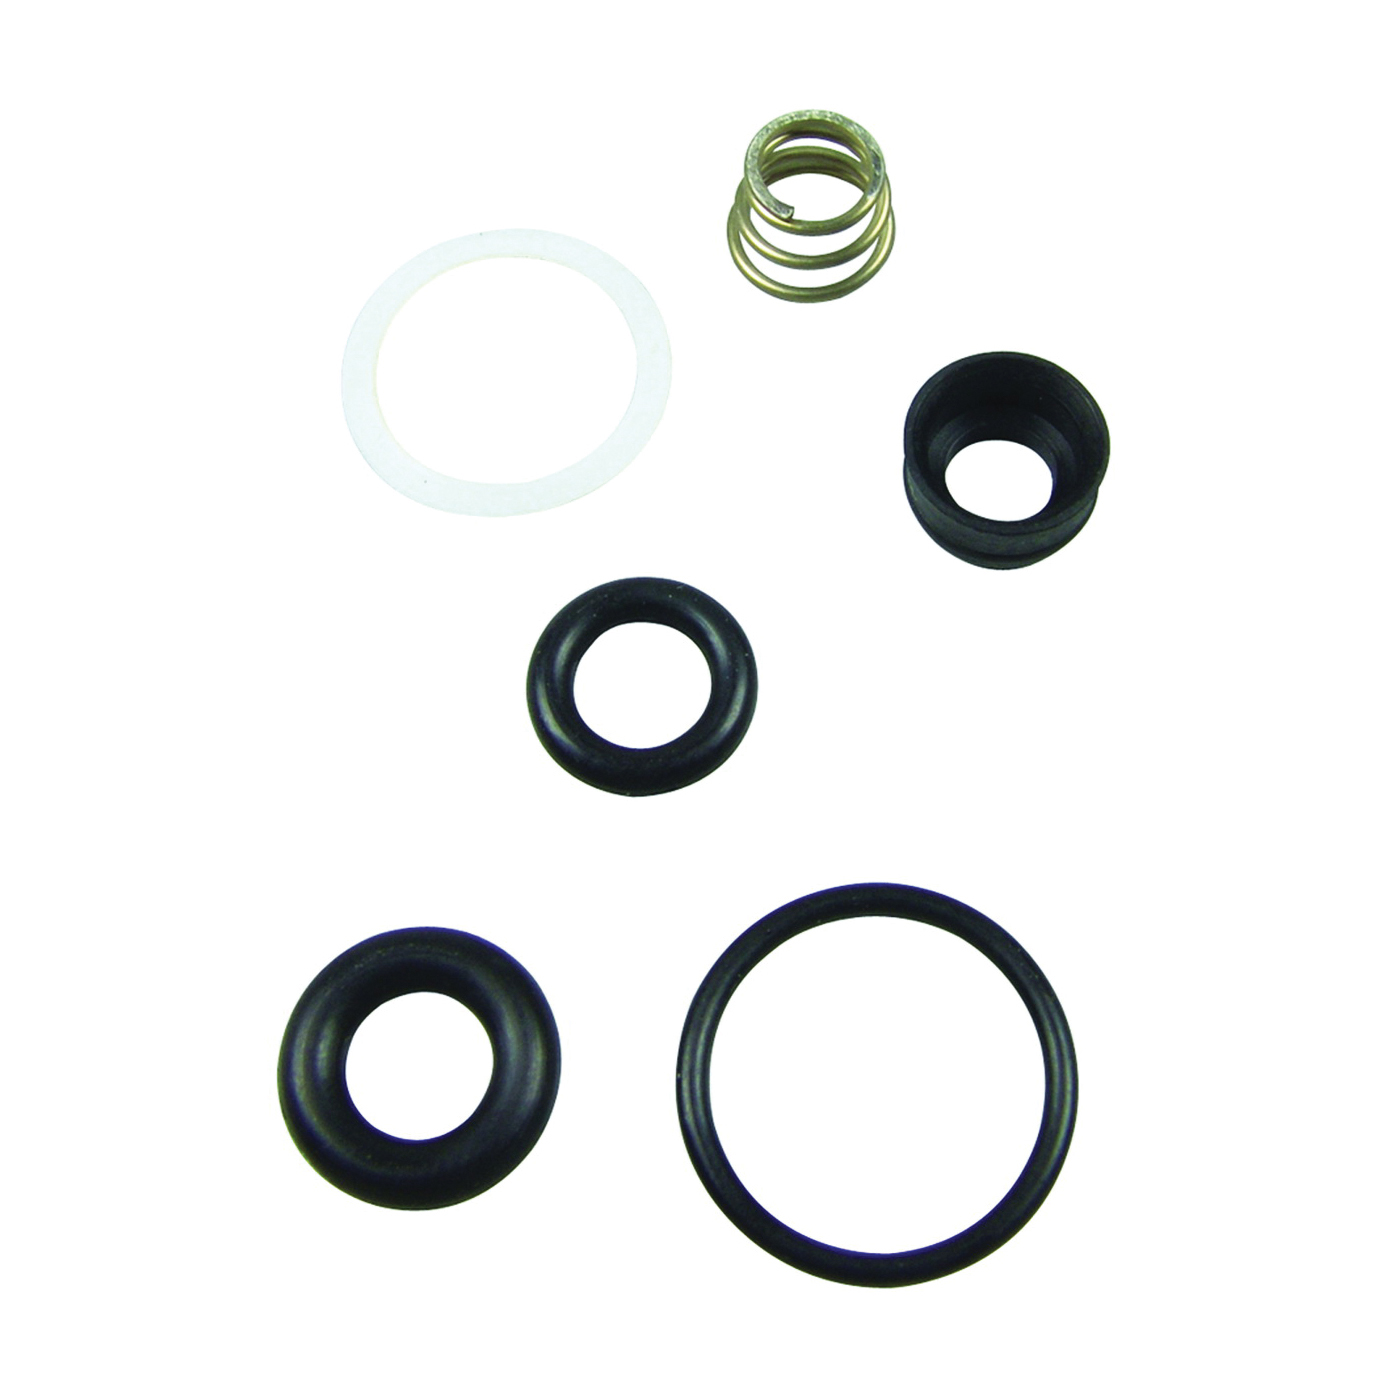 Picture of Danco 124134 Stem Repair Kit, Stainless Steel, Black, For: Delux Kitchen and Bathroom Faucets